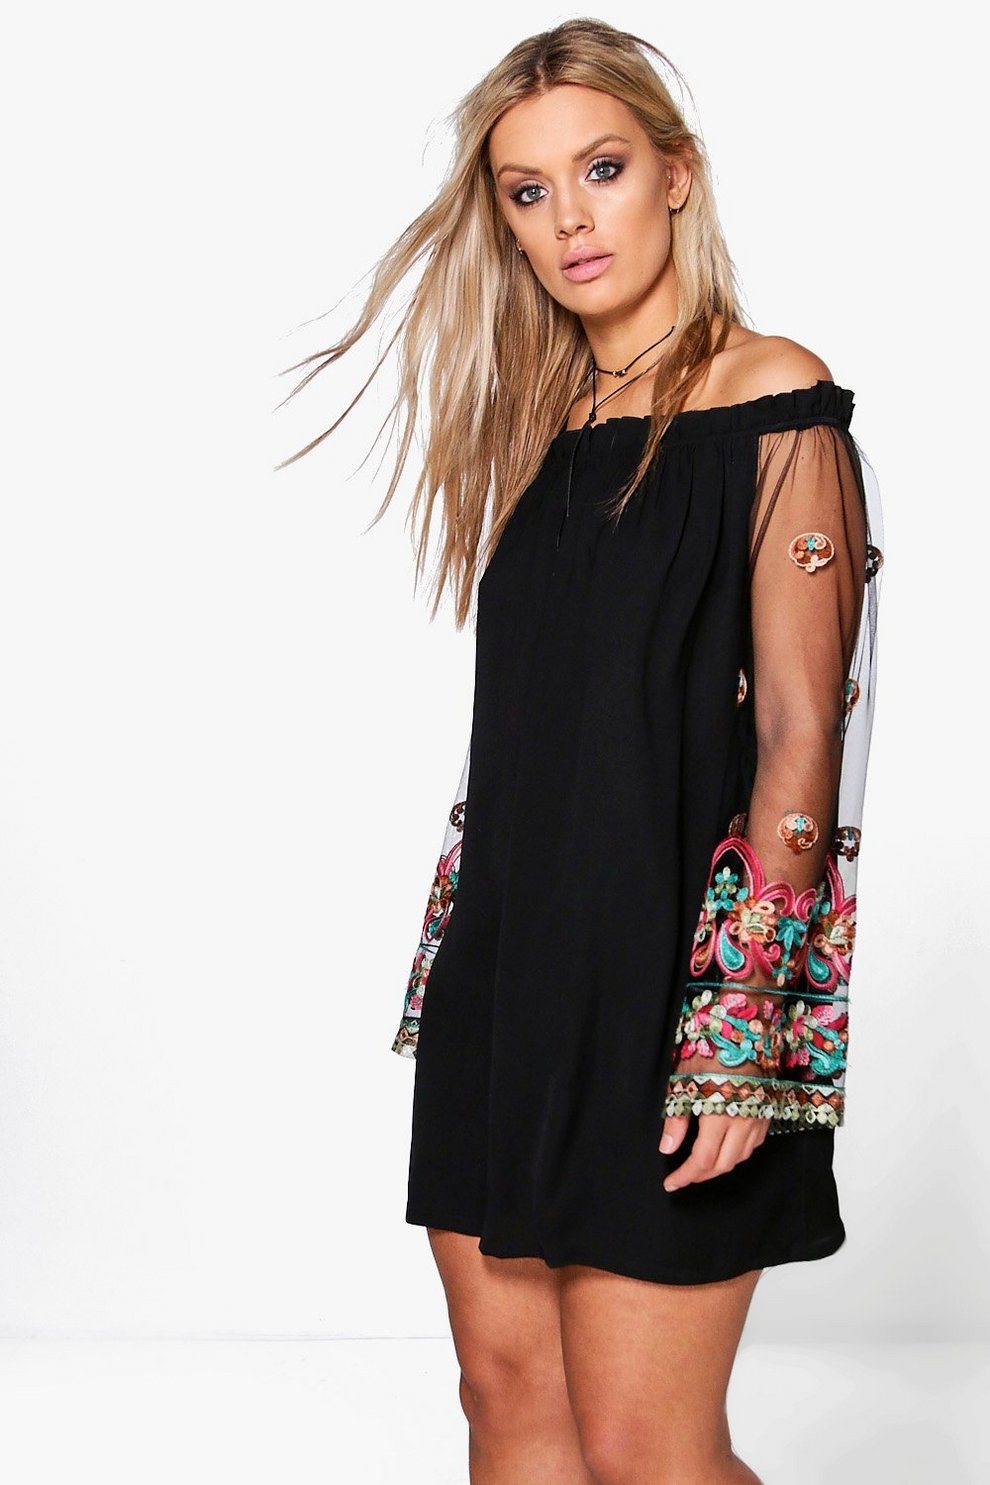 Boohoo Plus Embellished Off The Shoulder Dress Limited Edition Online Buy Cheap Top Quality 100% Authentic Cheap Online Huge Surprise Cheap Online Outlet Latest mg626wqU